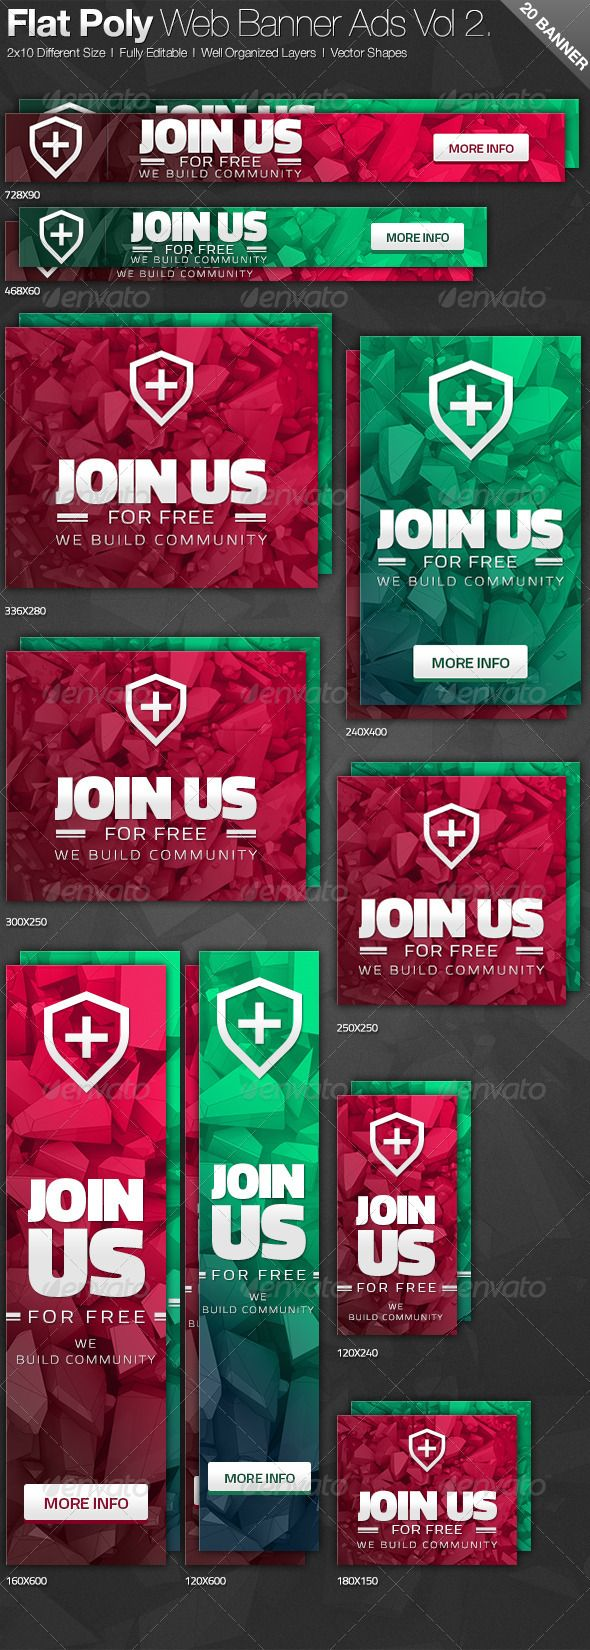 Flat Poly Web Banner Ads Template PSD   Buy and Download: http://graphicriver.net/item/flat-poly-web-banner-ads-vol-2/6769411?WT.ac=category_thumb&WT.z_author=hoodedclaw&ref=ksioks